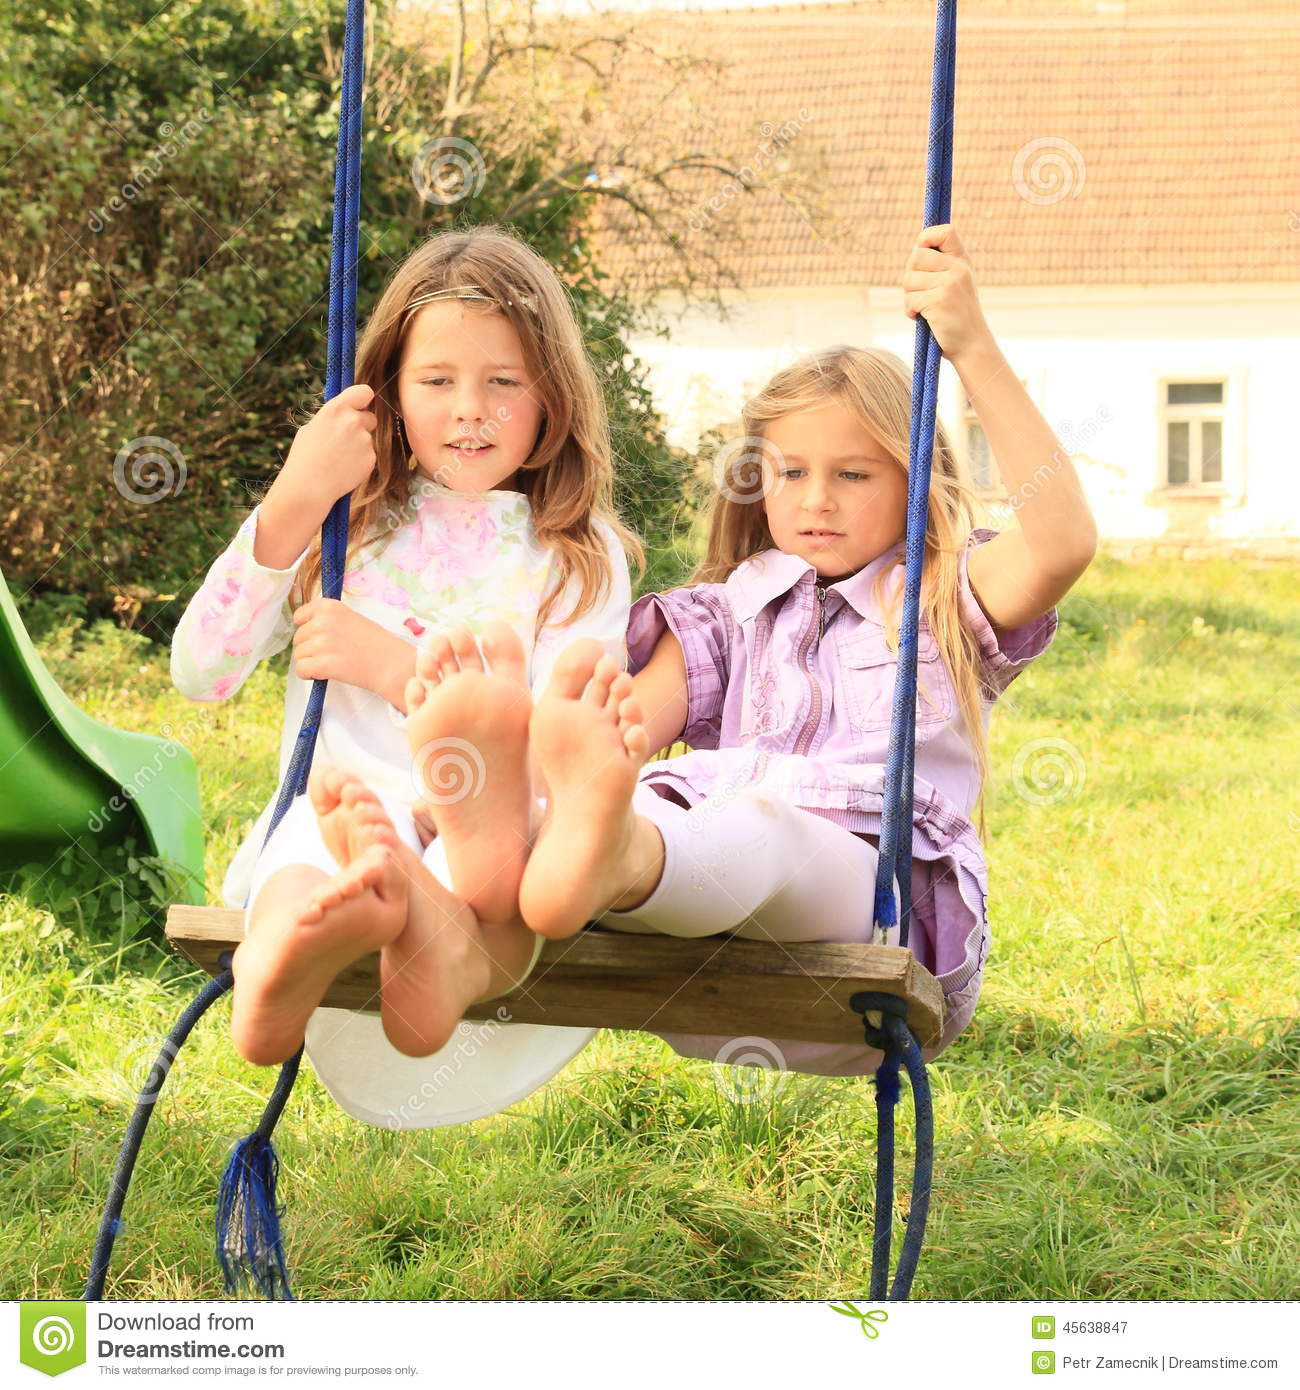 Simply magnificent girls swinging with girls special case